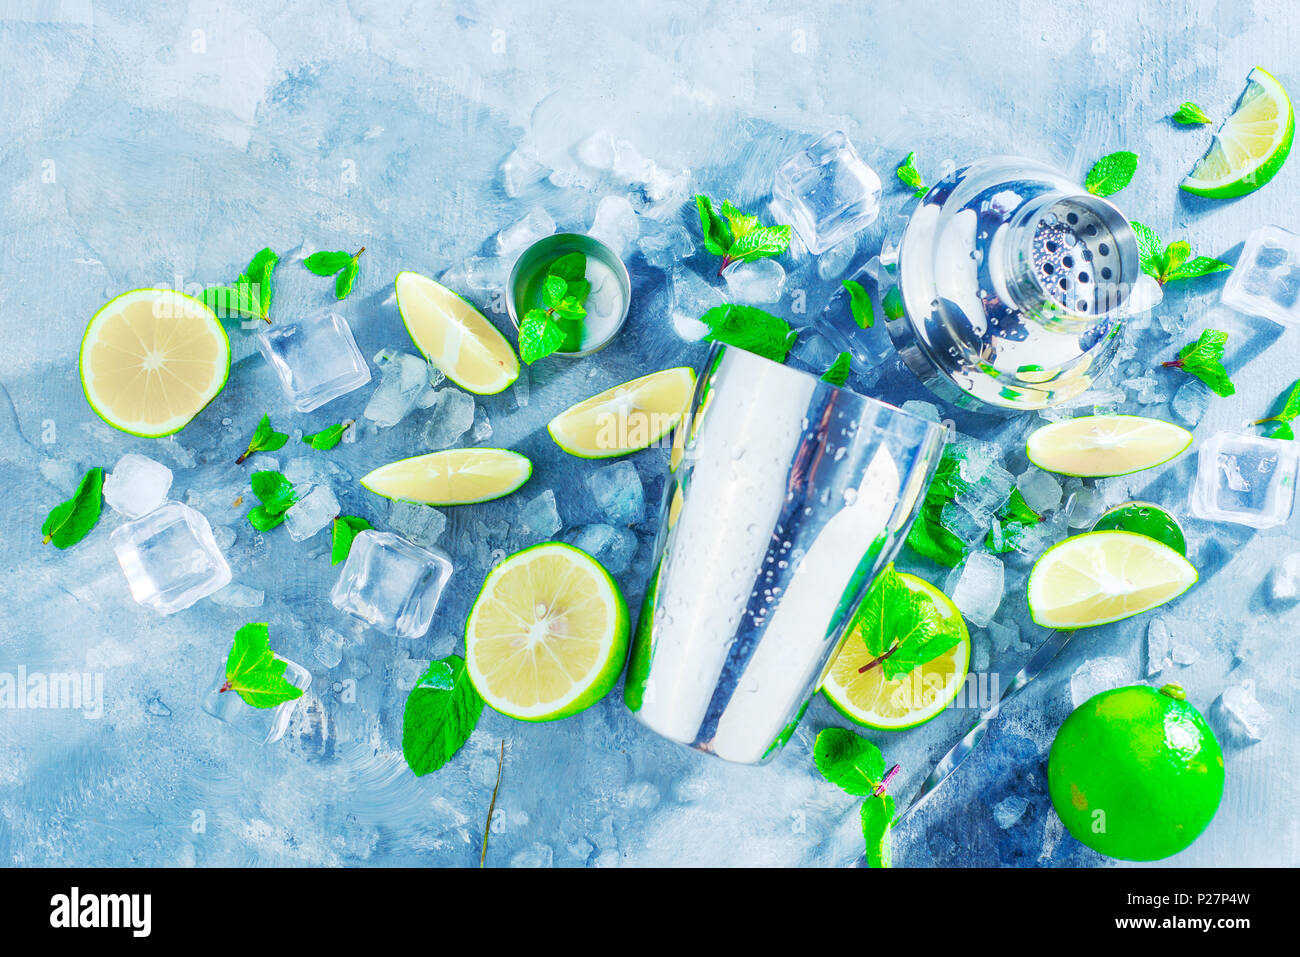 Shaker and bar accessories flat lay. Fresh mojito cocktail ingredients, mint, lime and ice cubes on a gray stone background. Summer drink concept with - Stock Image